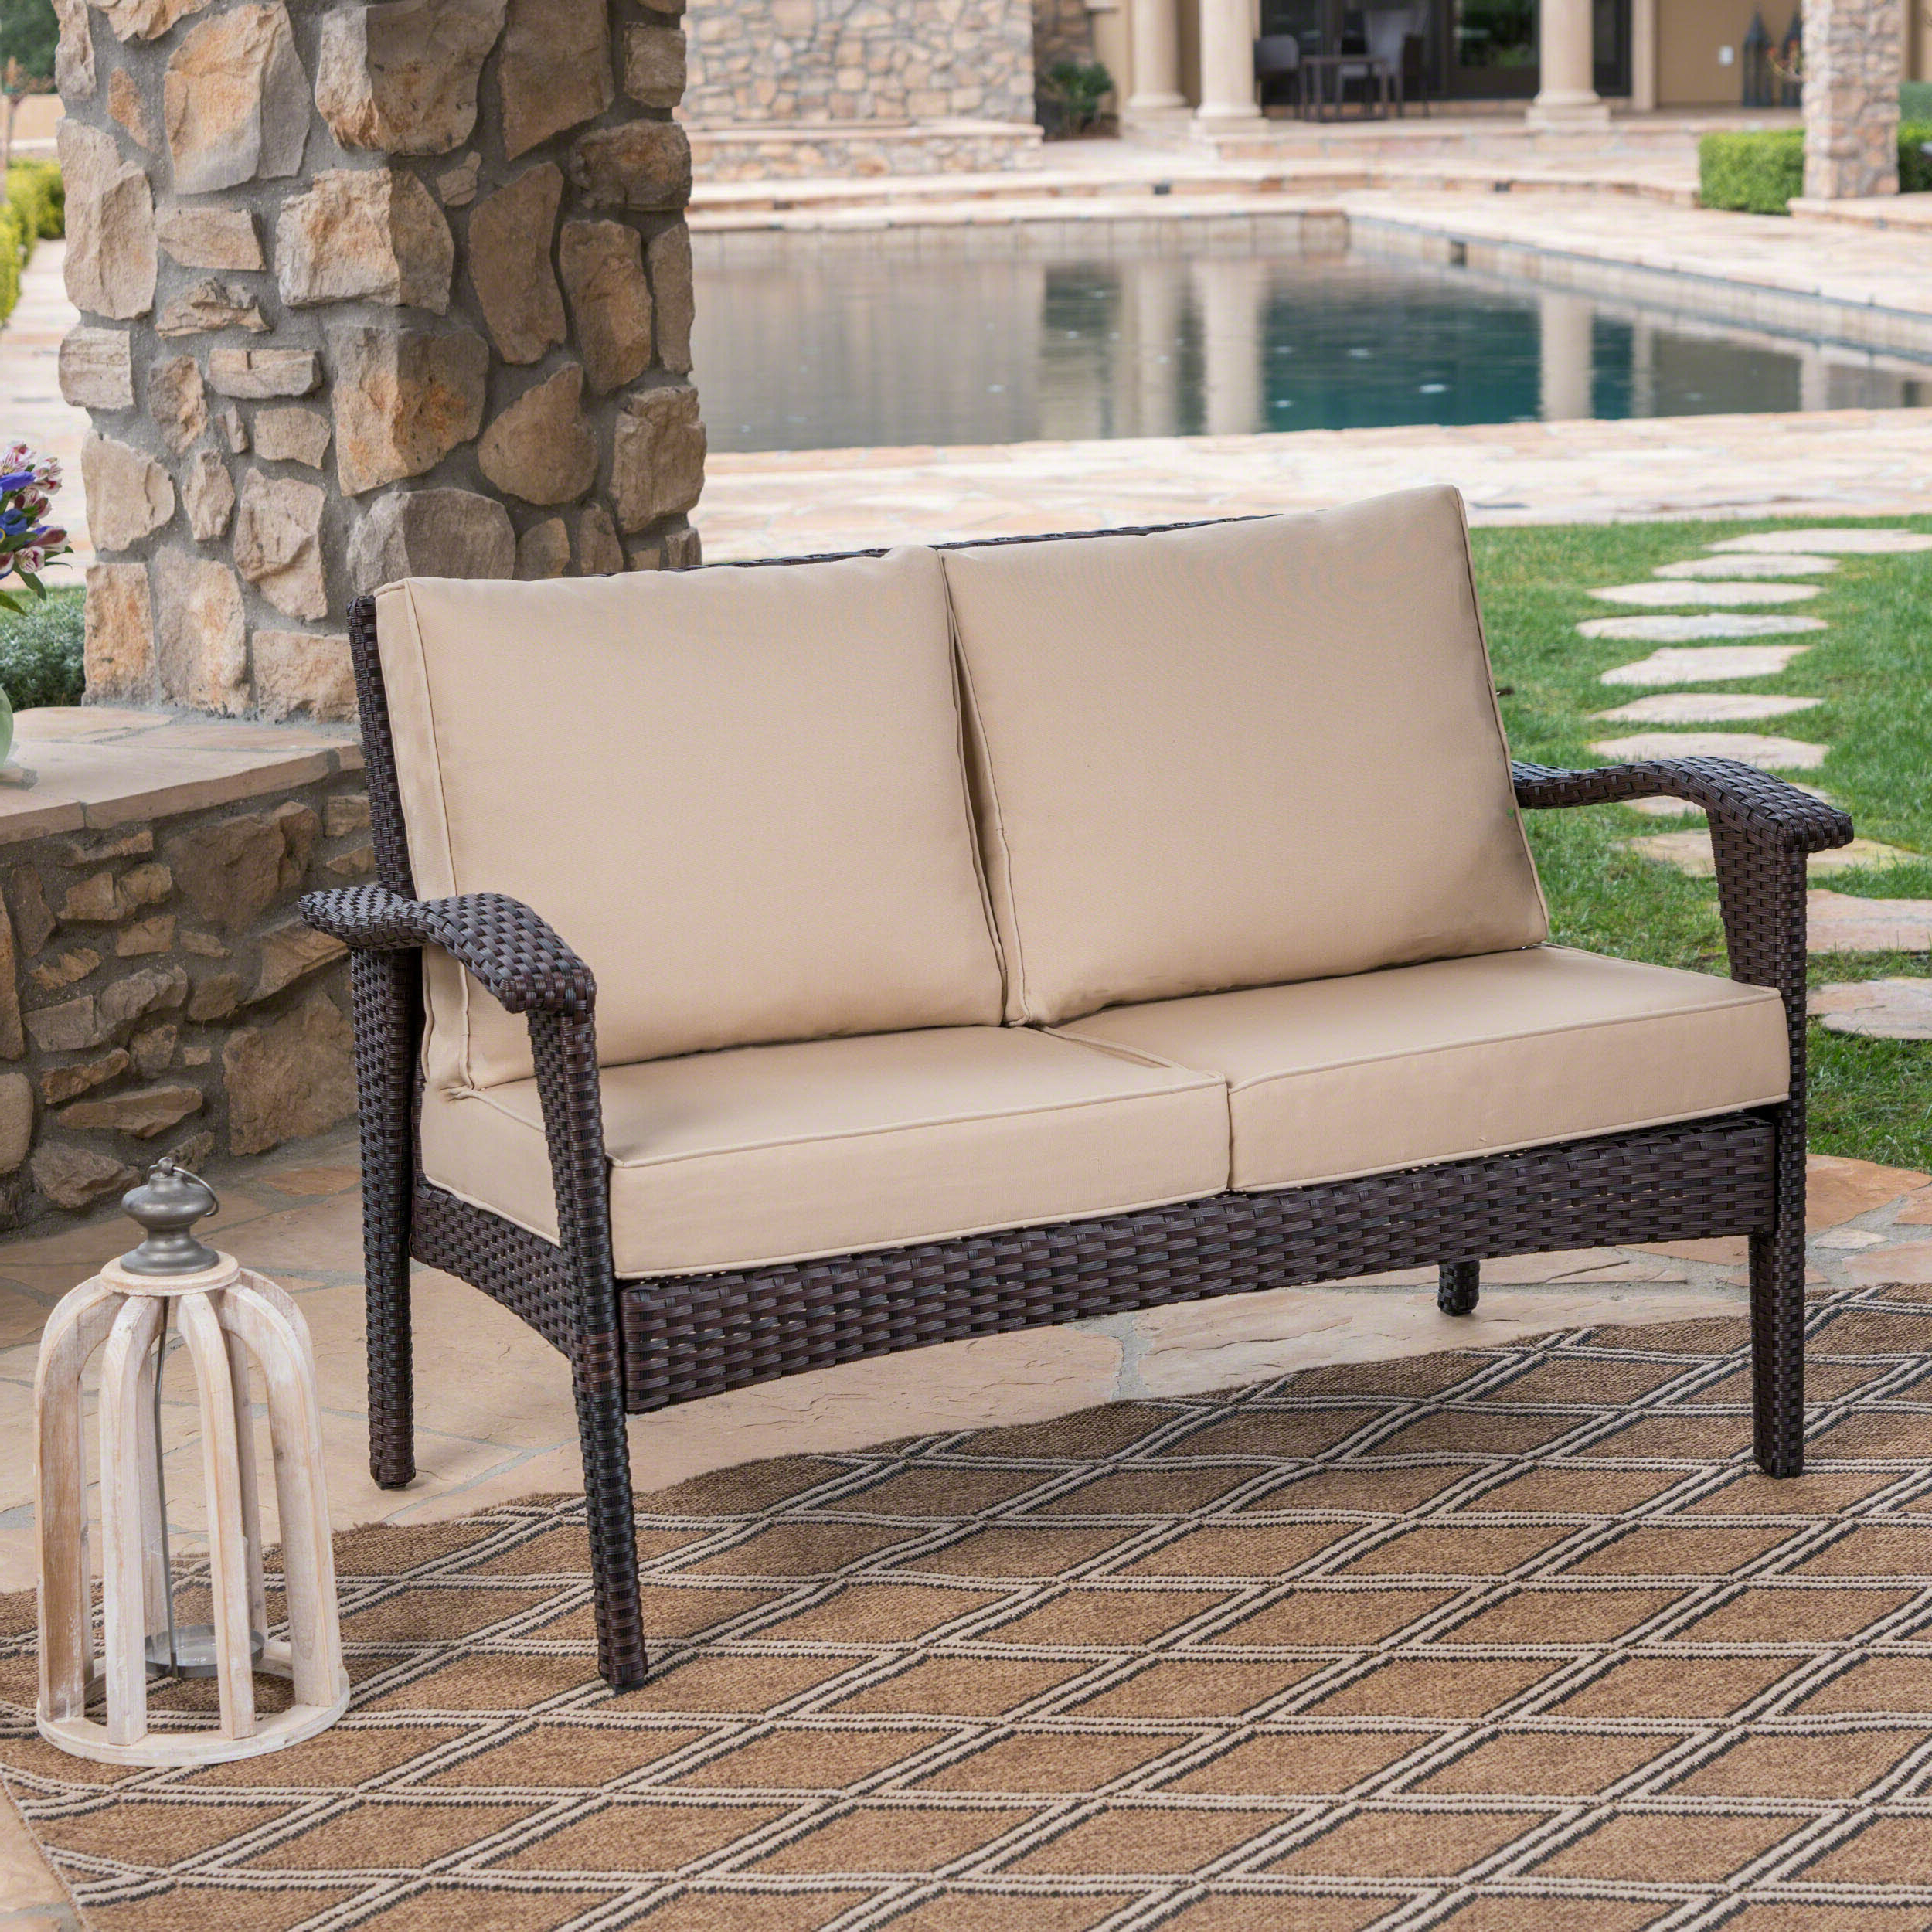 Menifee Loveseats With Cushions Intended For Famous Hagler Outdoor Loveseat With Cushions (View 17 of 25)